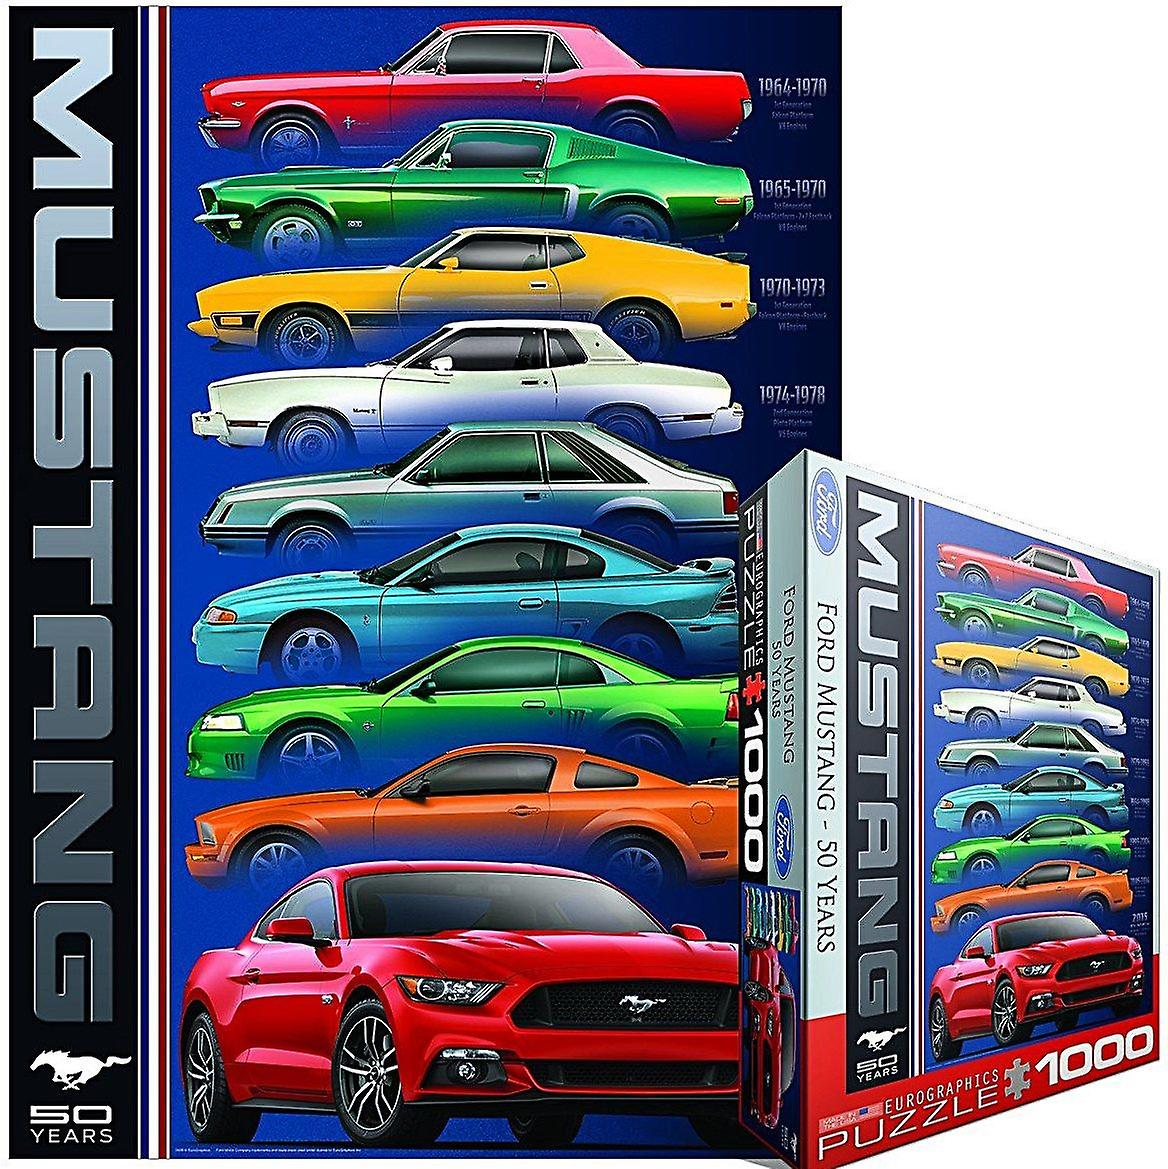 Ford Mustang 50 Years 9 Types 1000 piece jigsaw puzzle 680mm x490mm  (pz)